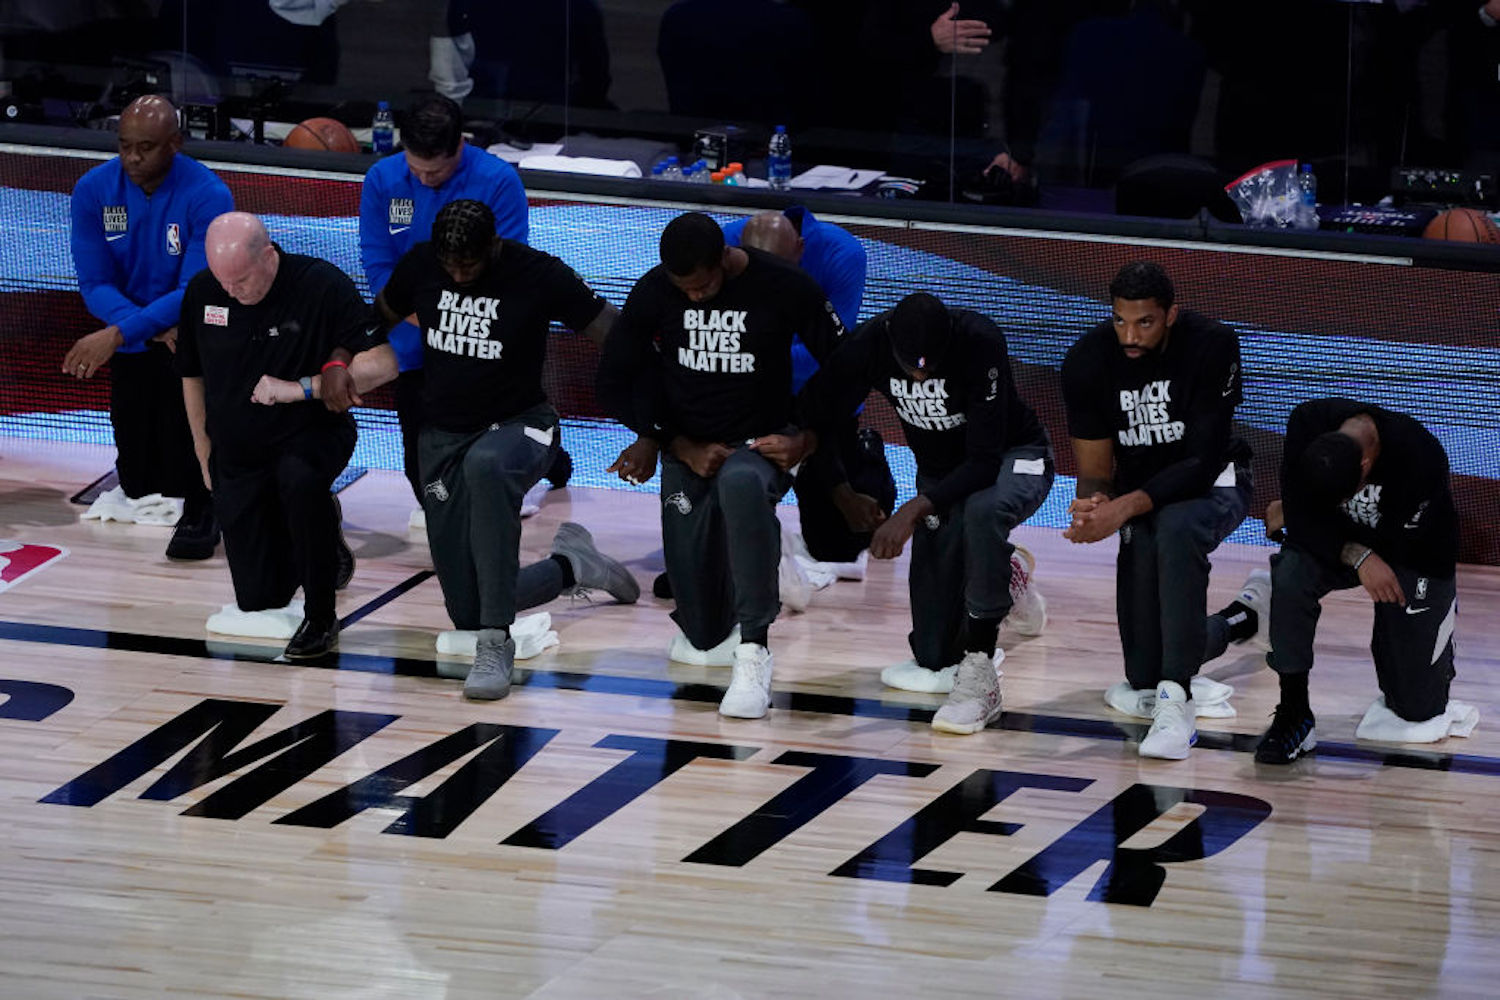 The Bucks and Magic boycotted Game 5 of their playoff series Wednesday, and they won't be the last teams to do so this week.